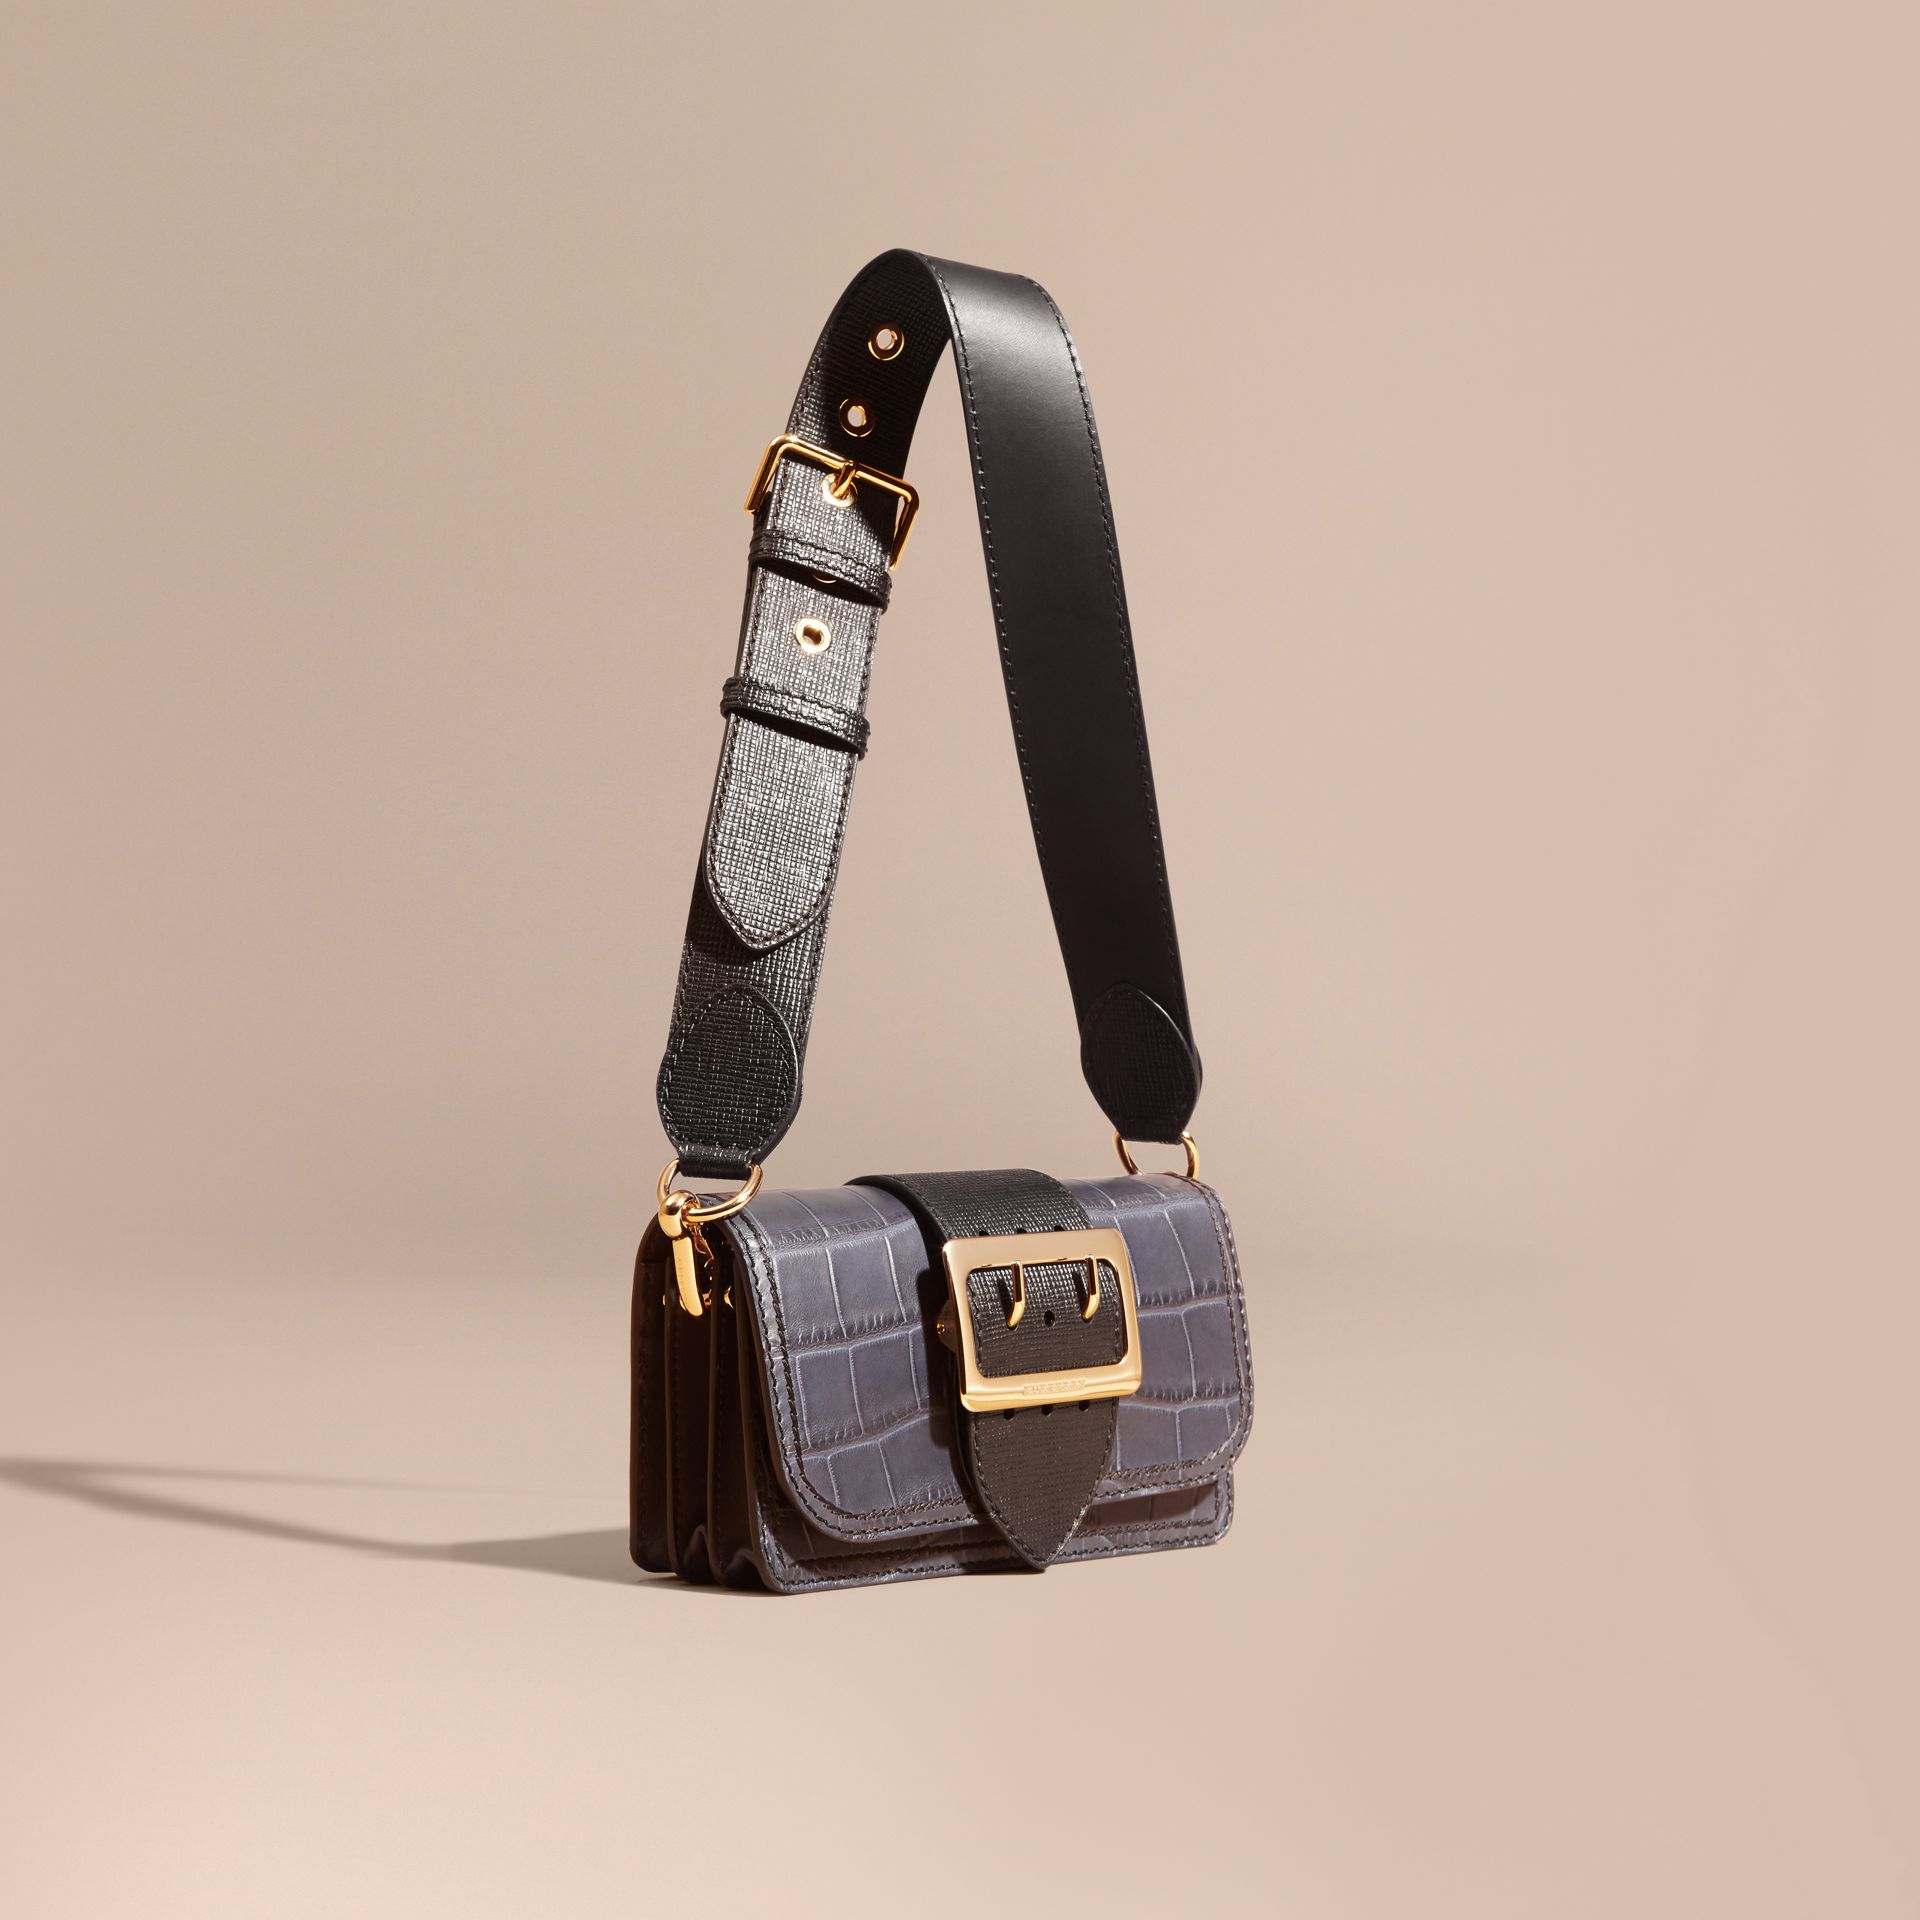 The Small Buckle Bag in Alligator and Leather in Navy / Black - gallery image 1